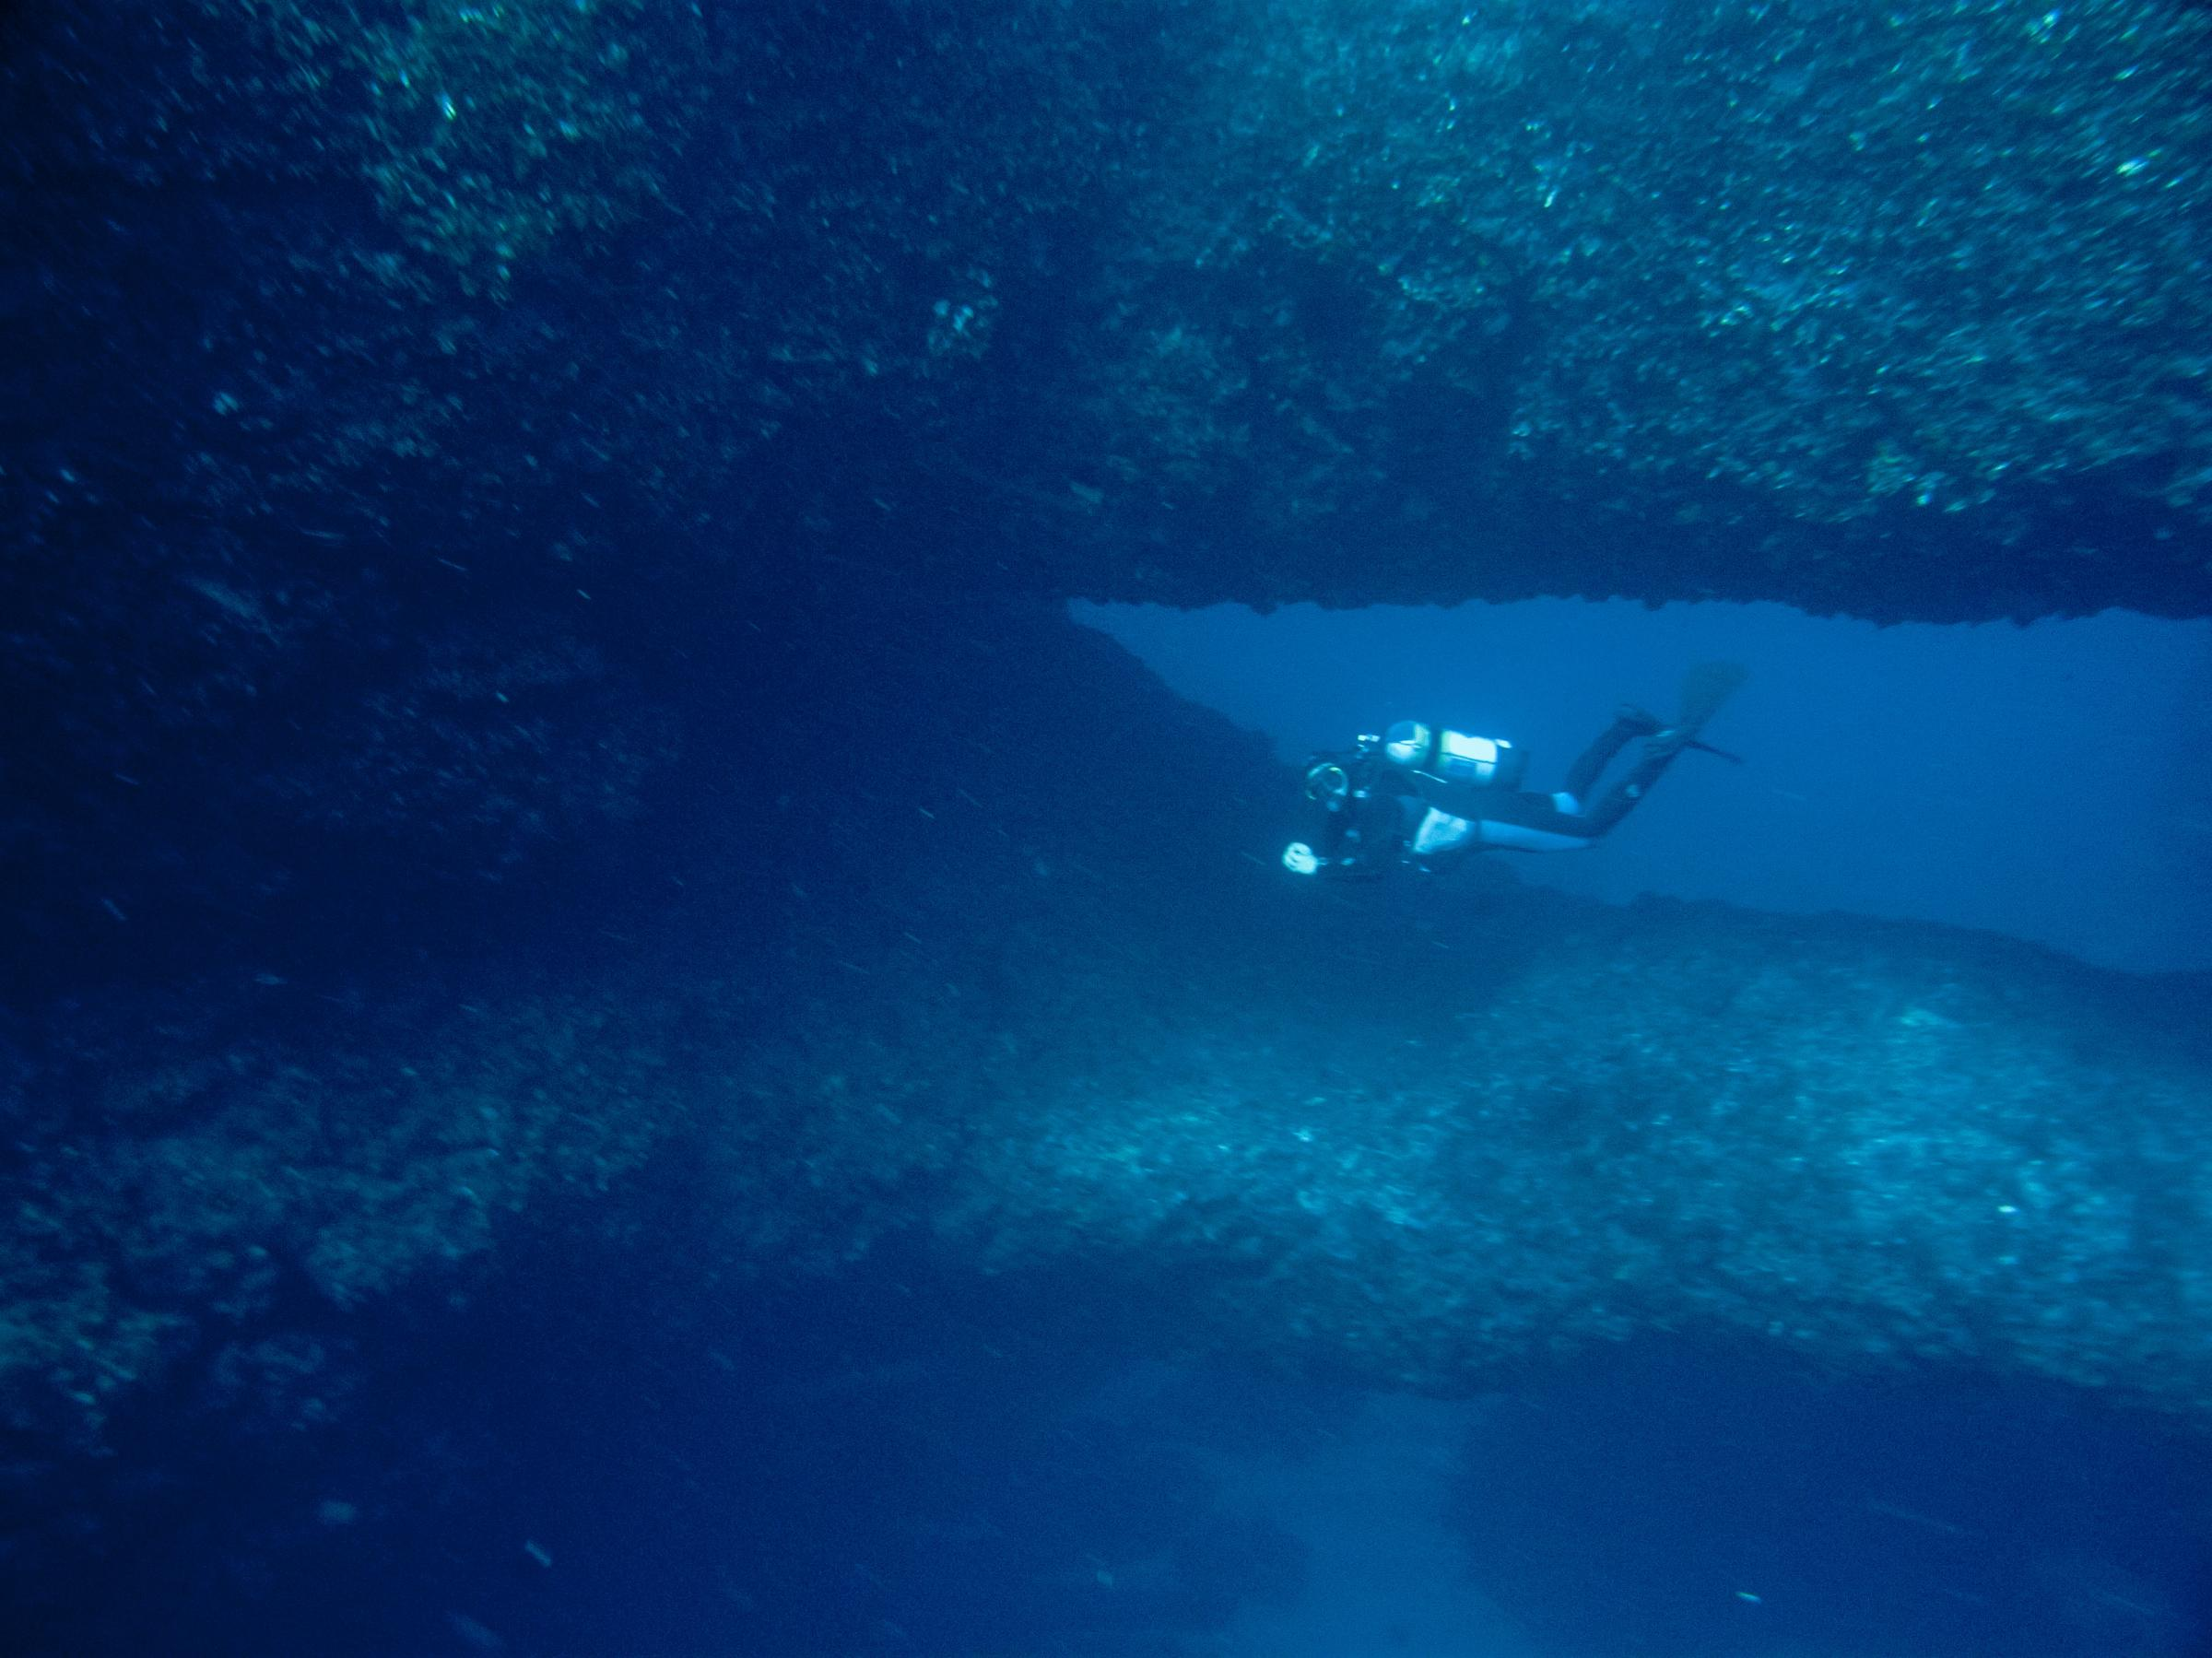 Double Arch dive site